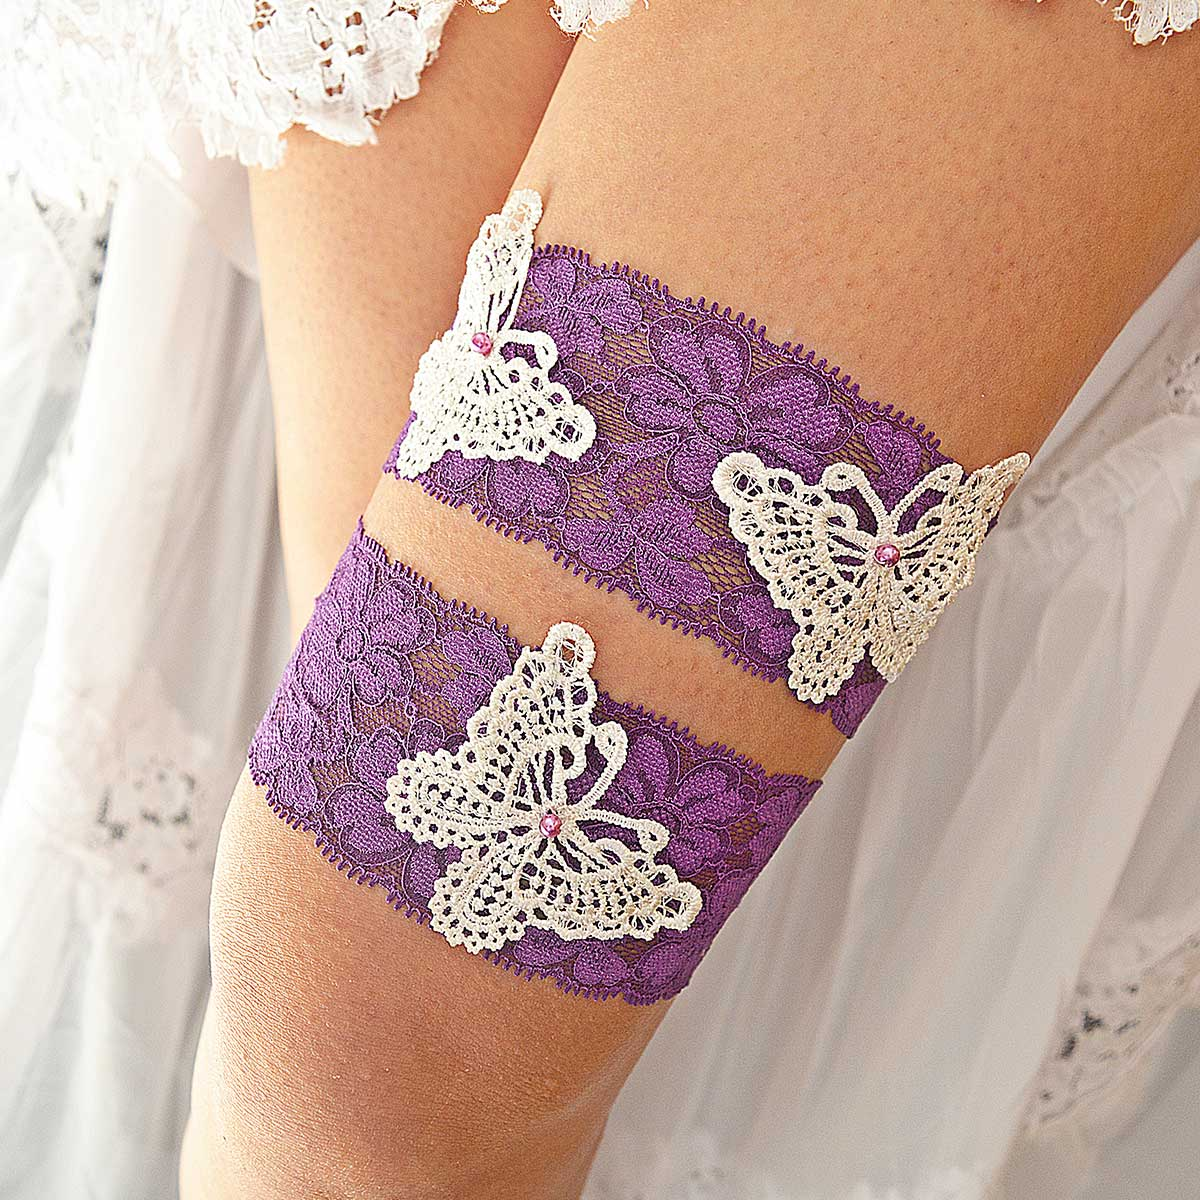 Purple Bridal Garter With White Butterfly Appliques & Pearls - Wedding Garter - SuzannaM Designs